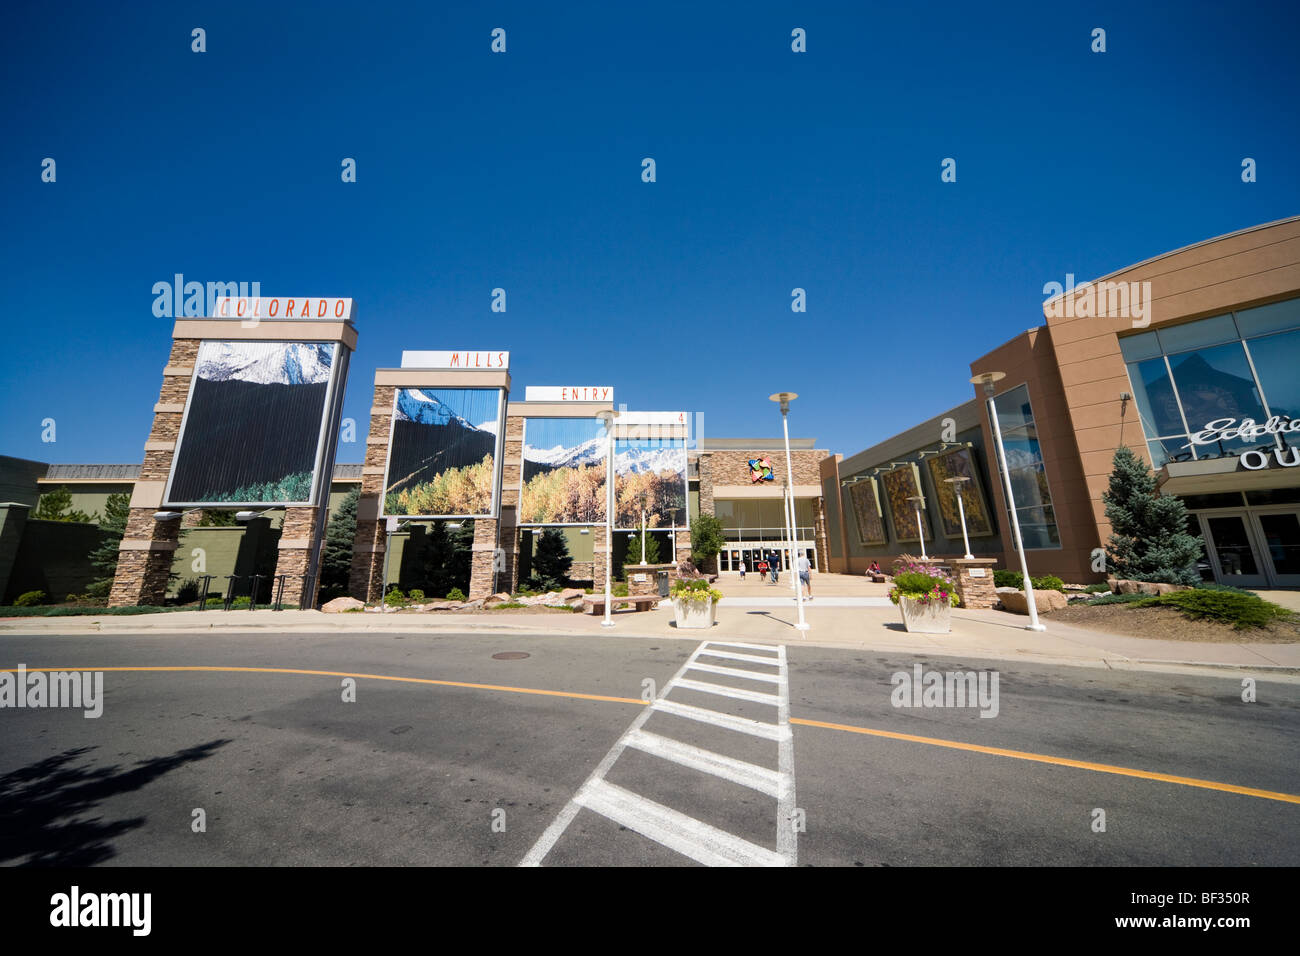 American Colorado Mills Outlet Shopping Mall entrance, entry, 4, Four in Denver Colorado USA CO US. Visitors shopping - Stock Image